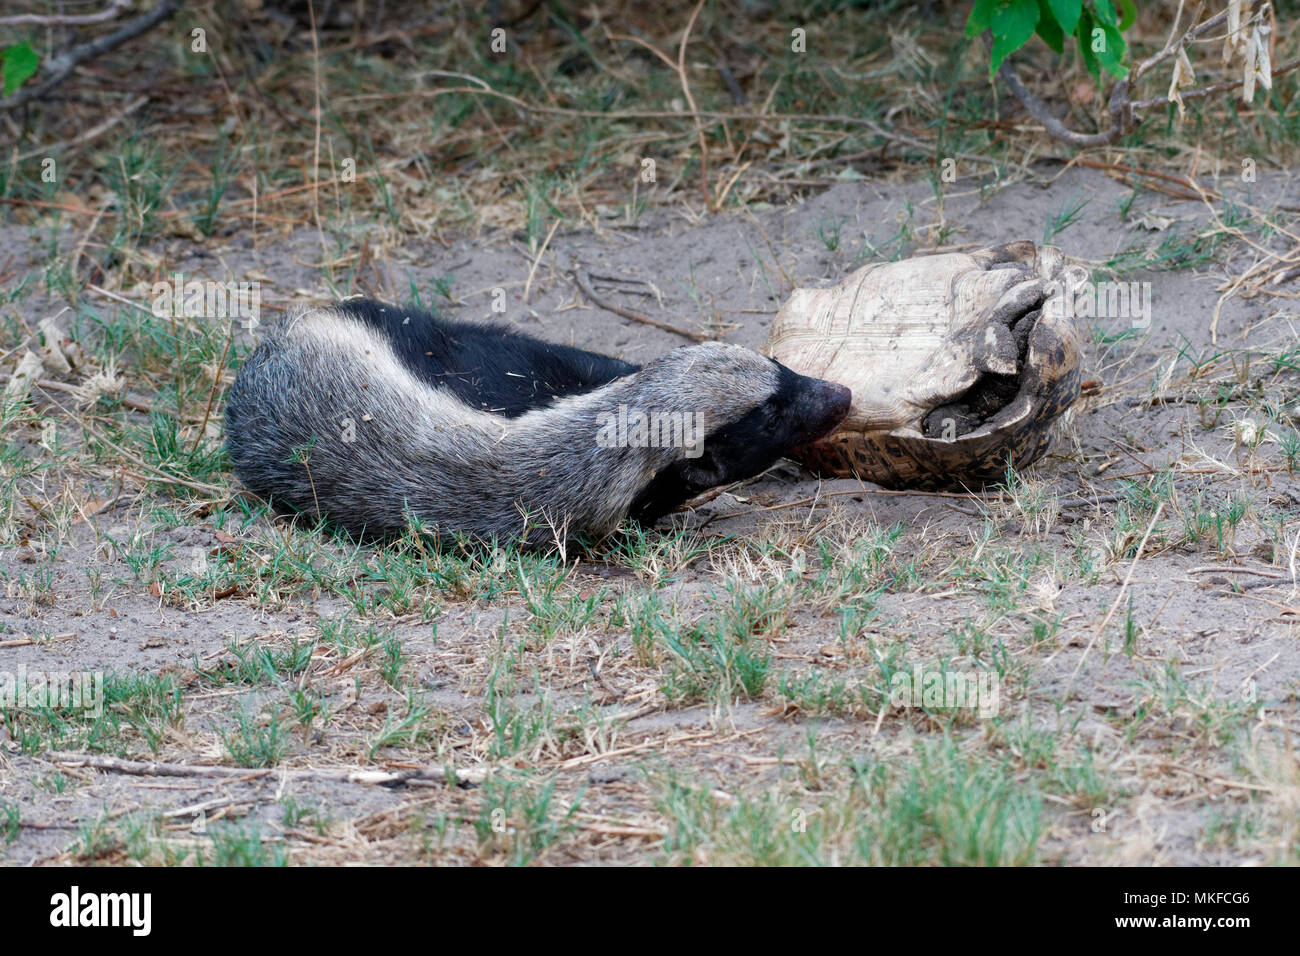 Honey badger (Mellivora capensis) eating a leopard tortoise, Botswana - Stock Image